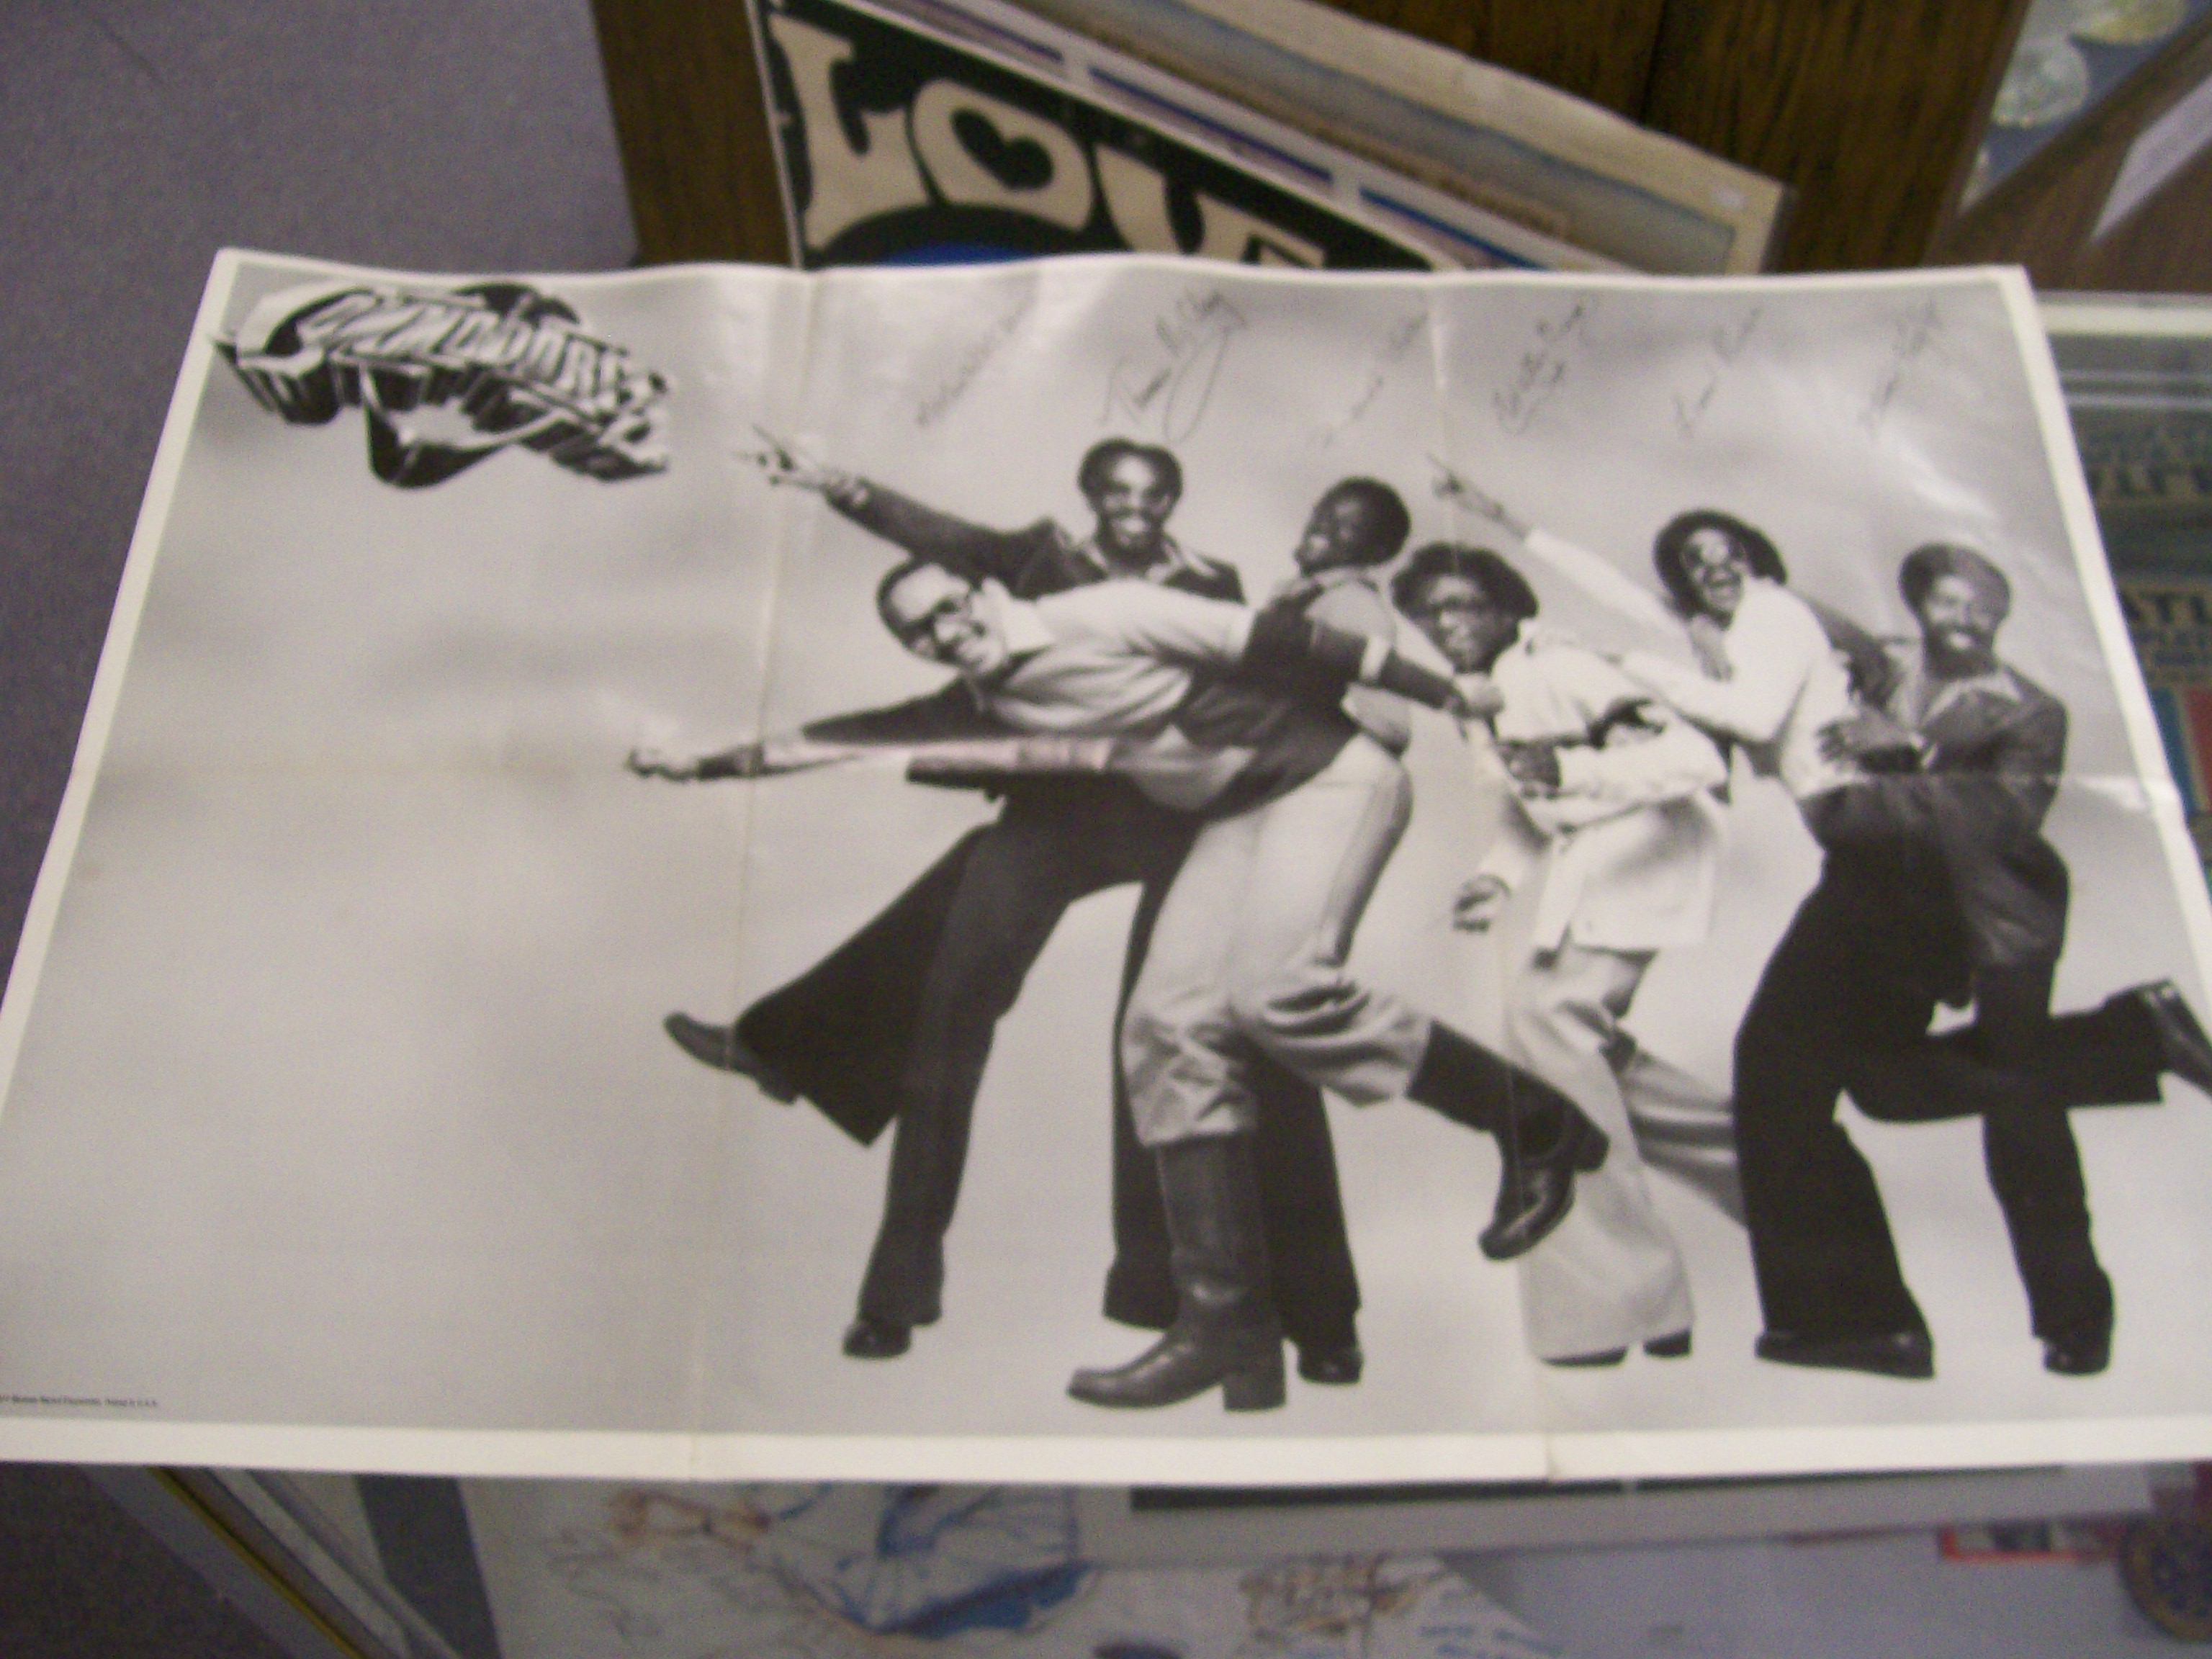 Commodores Motown Poster 2 FT. X 3 FT. 1977 Signed by Group